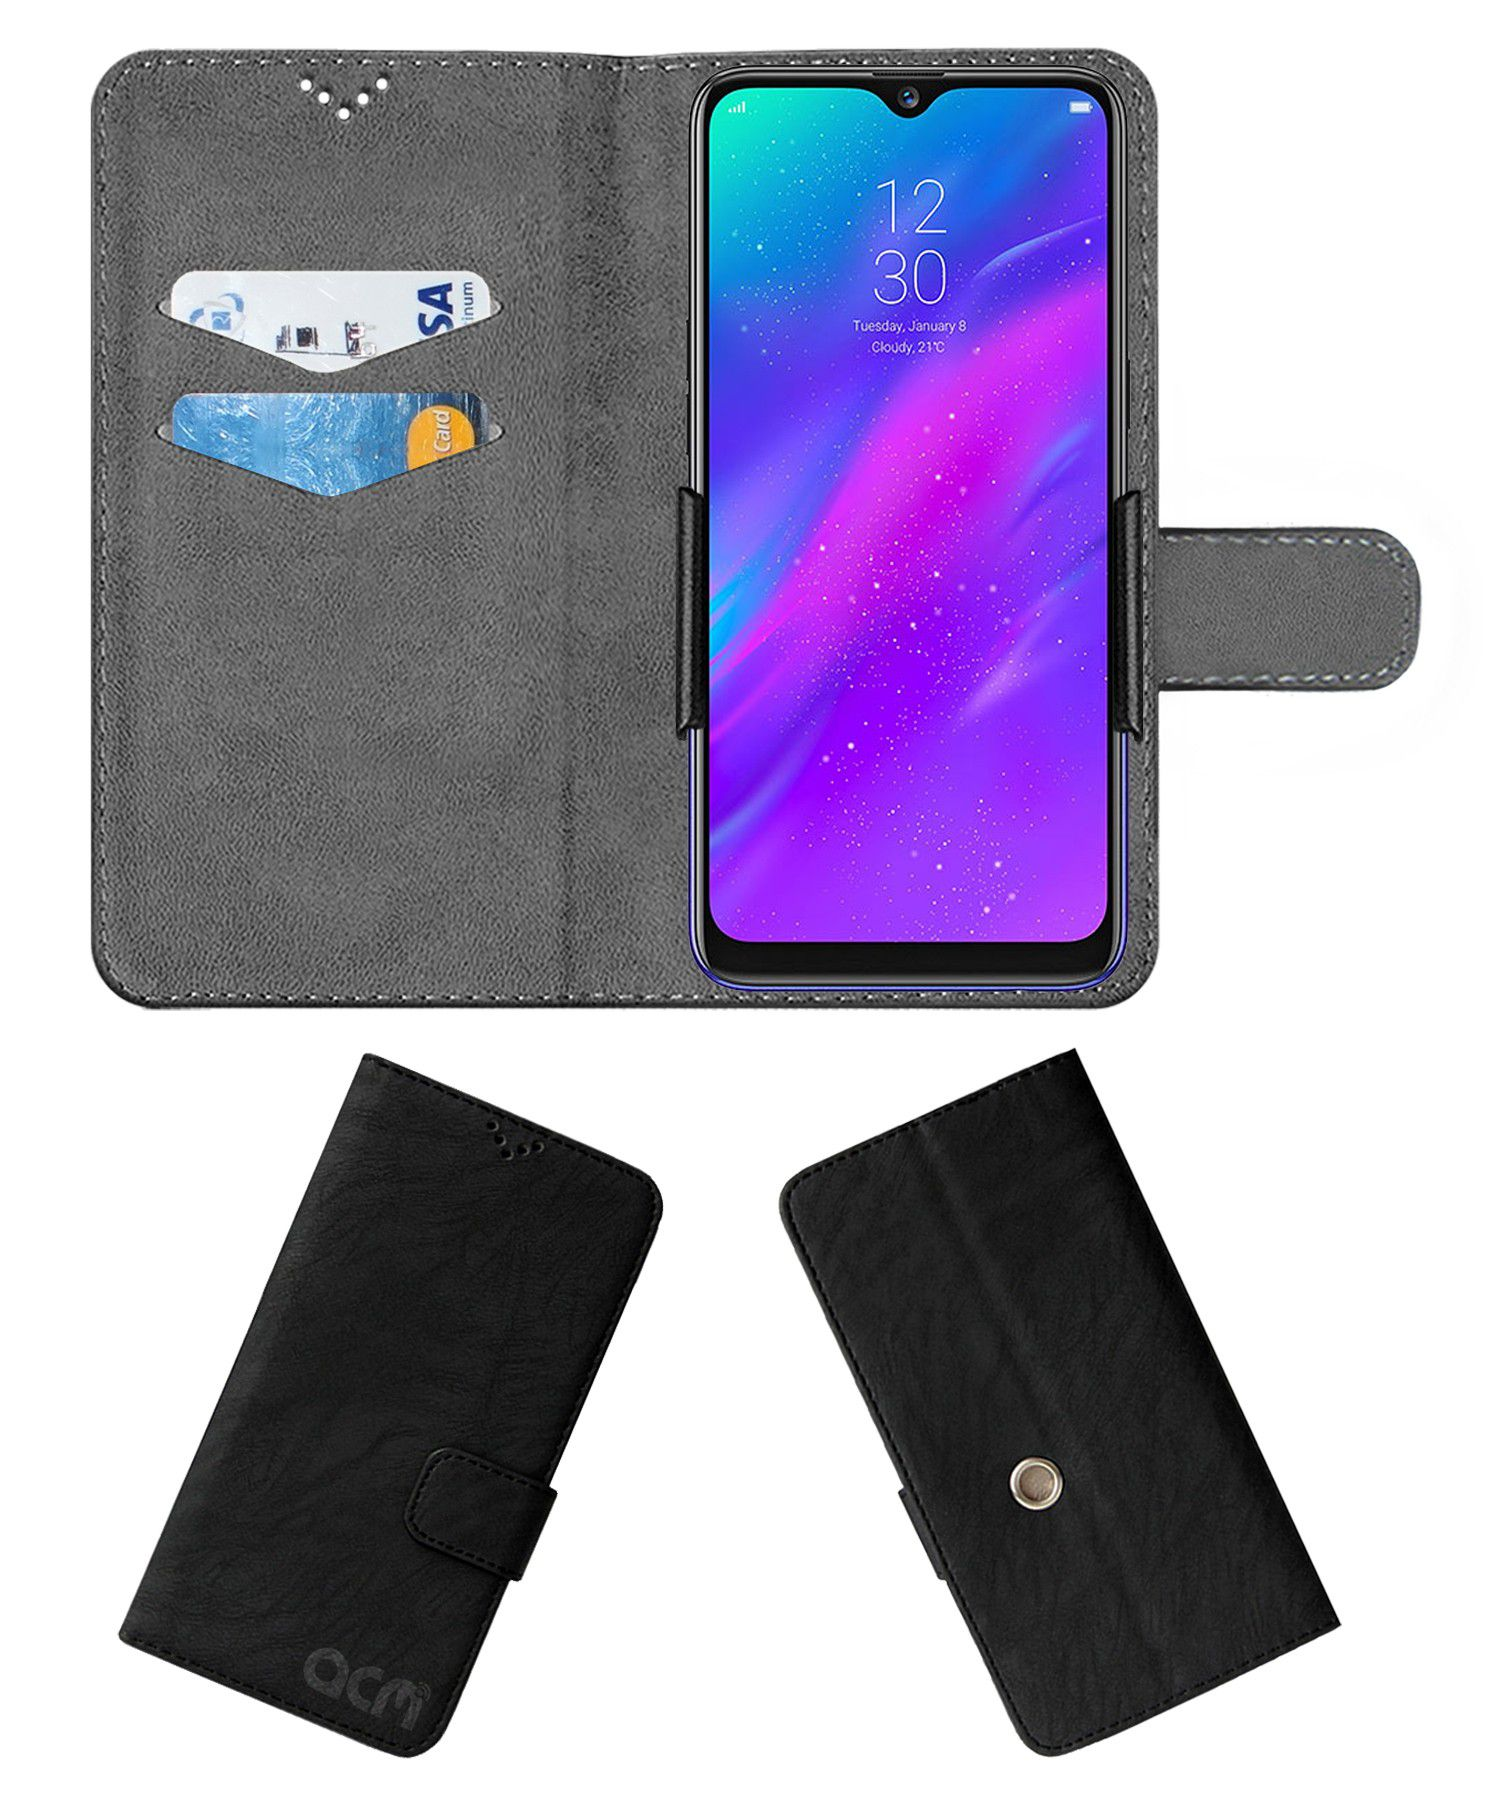 Realme 3 Flip Cover by ACM - Black Clip holder to hold your mobile securely